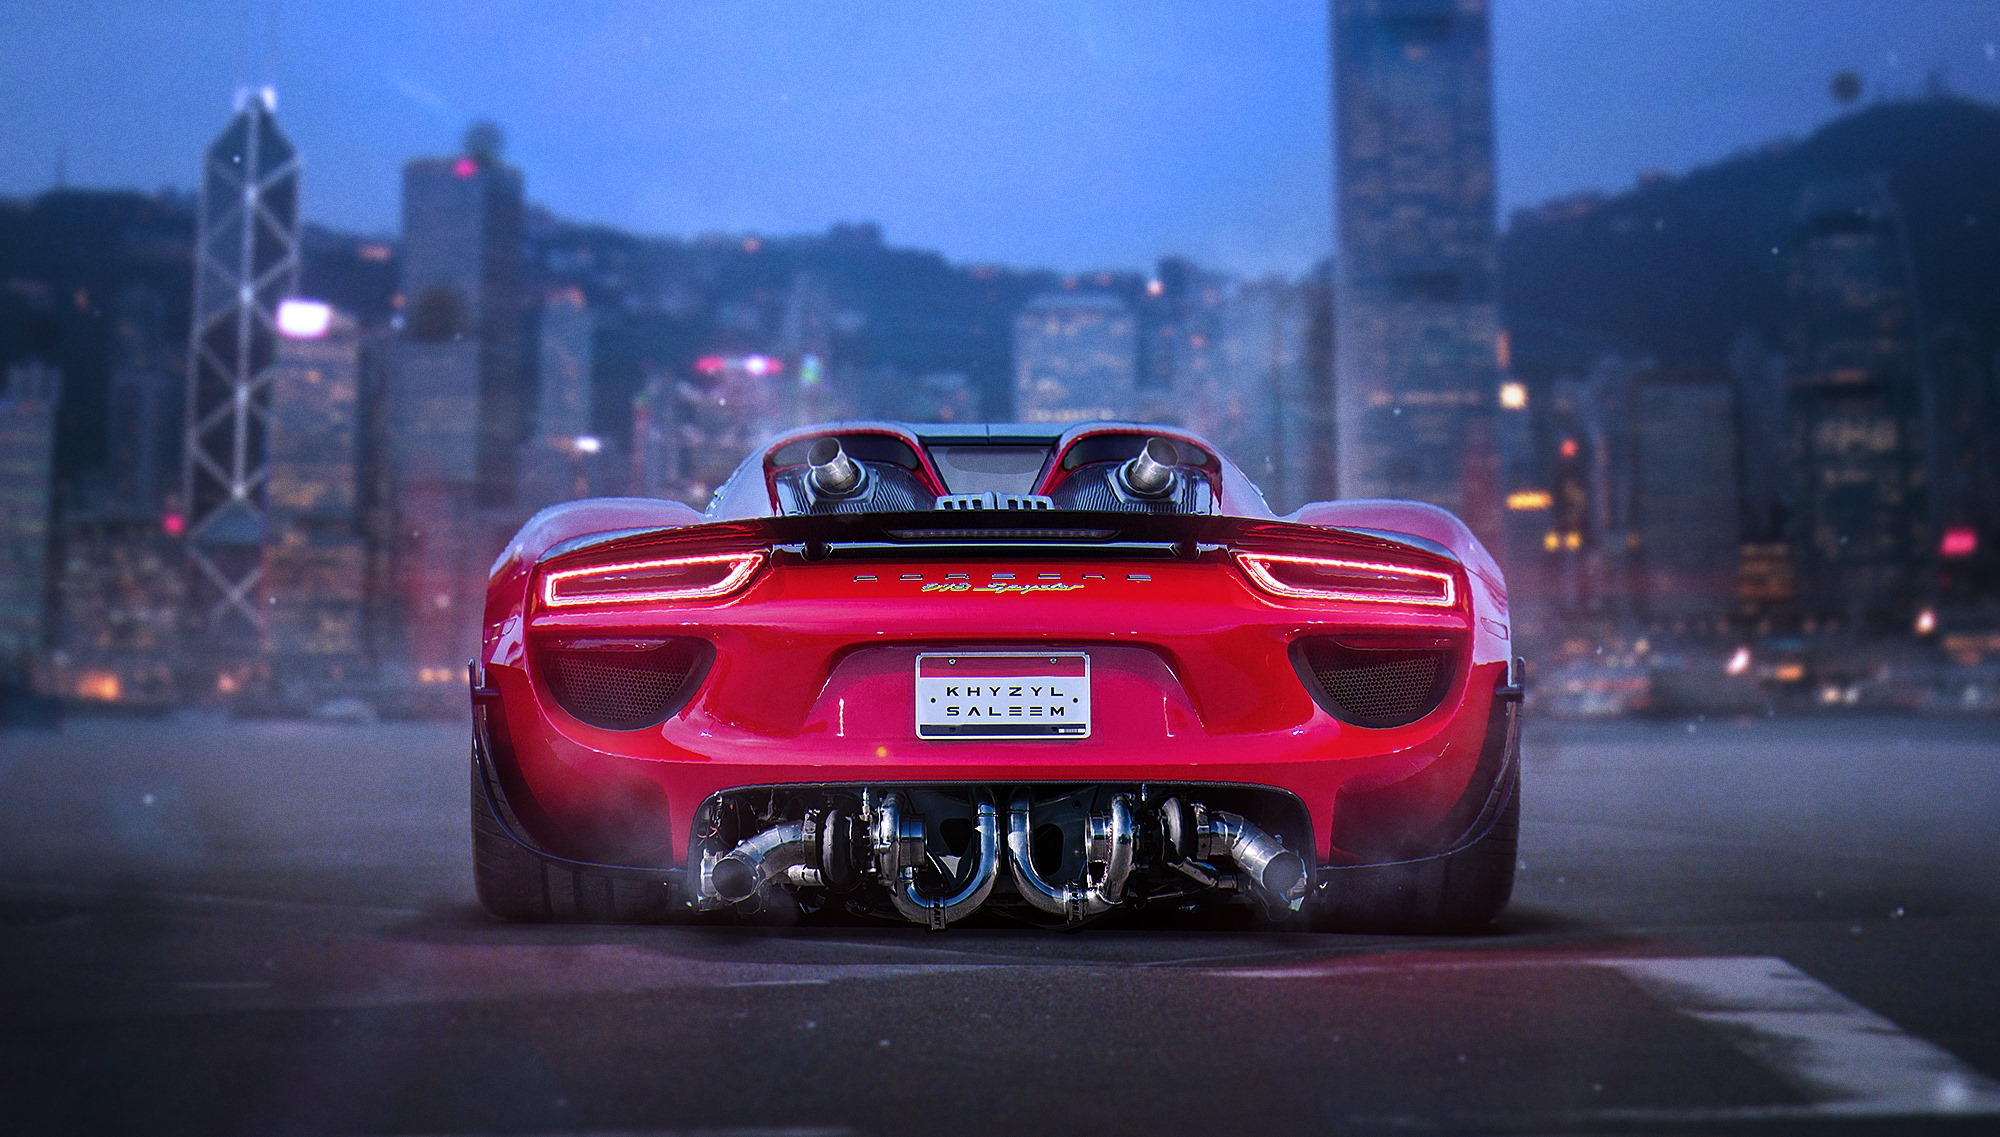 Twin Turbo Porsche 918 Spyder Rendered The Imaginary